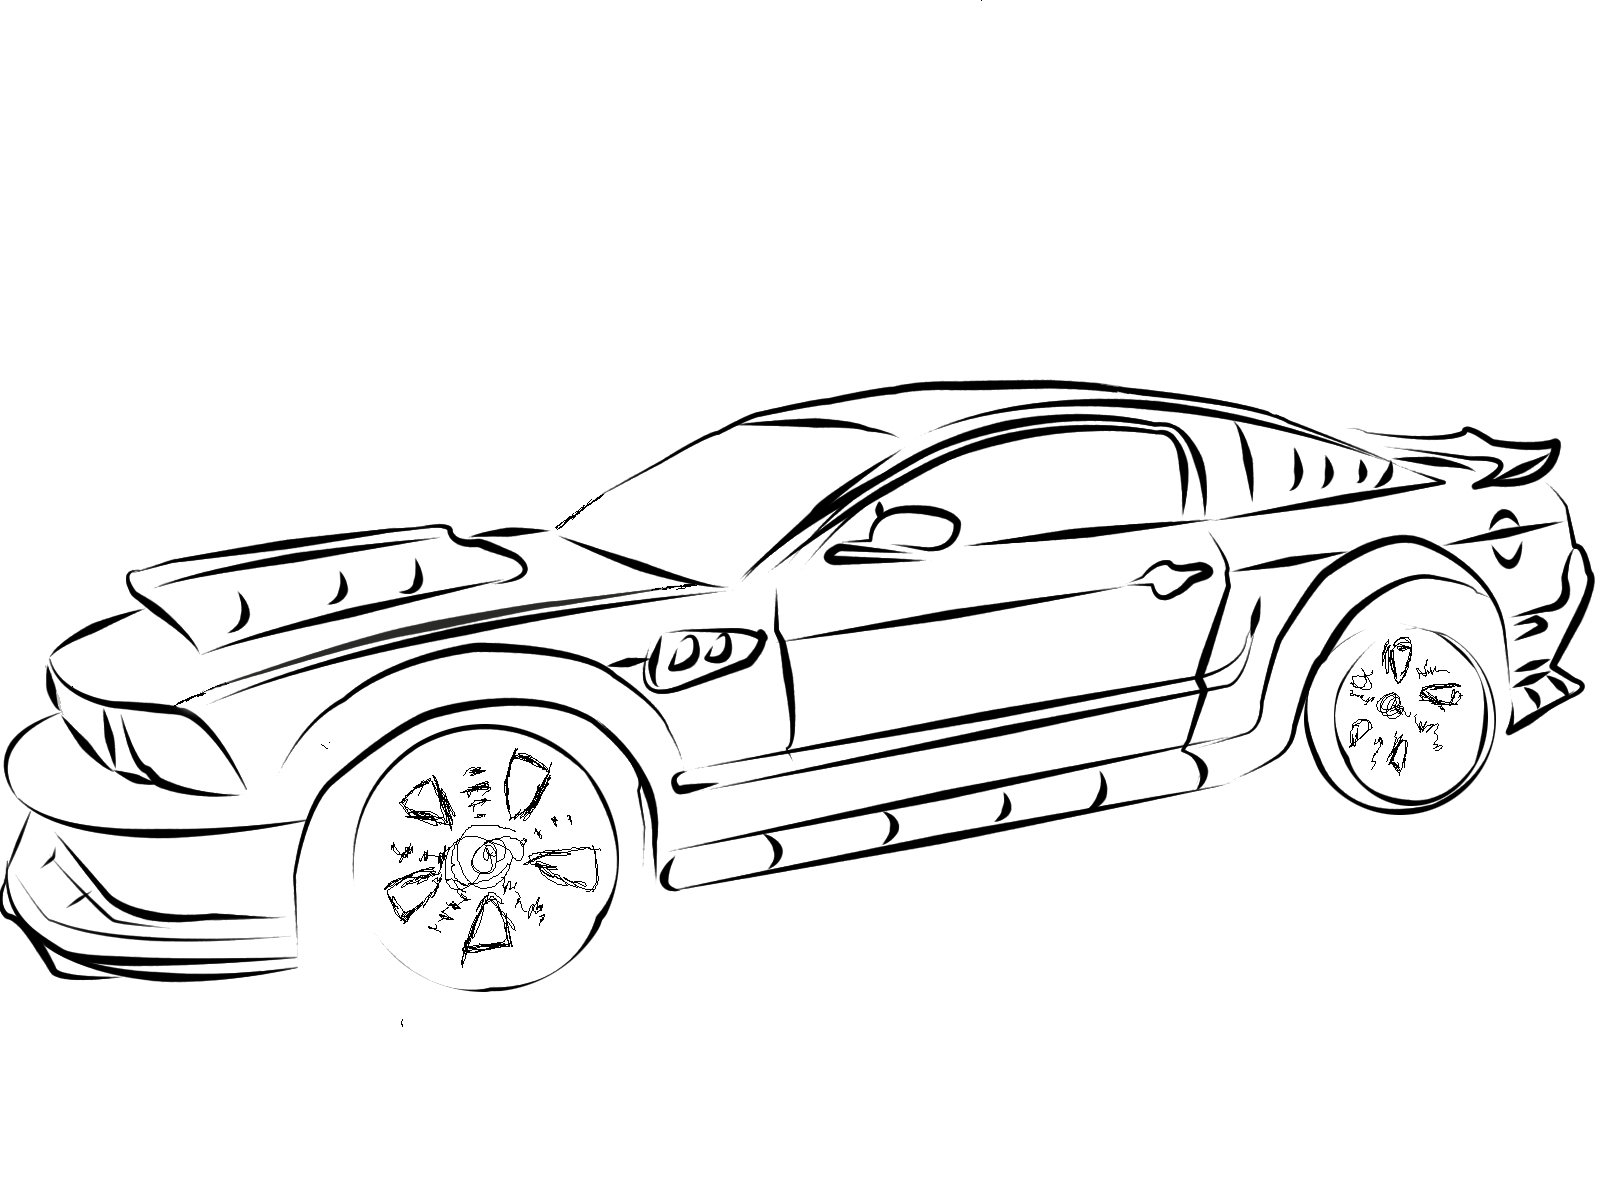 mustang car outline mustang muscle car stock illustration download image now outline car mustang